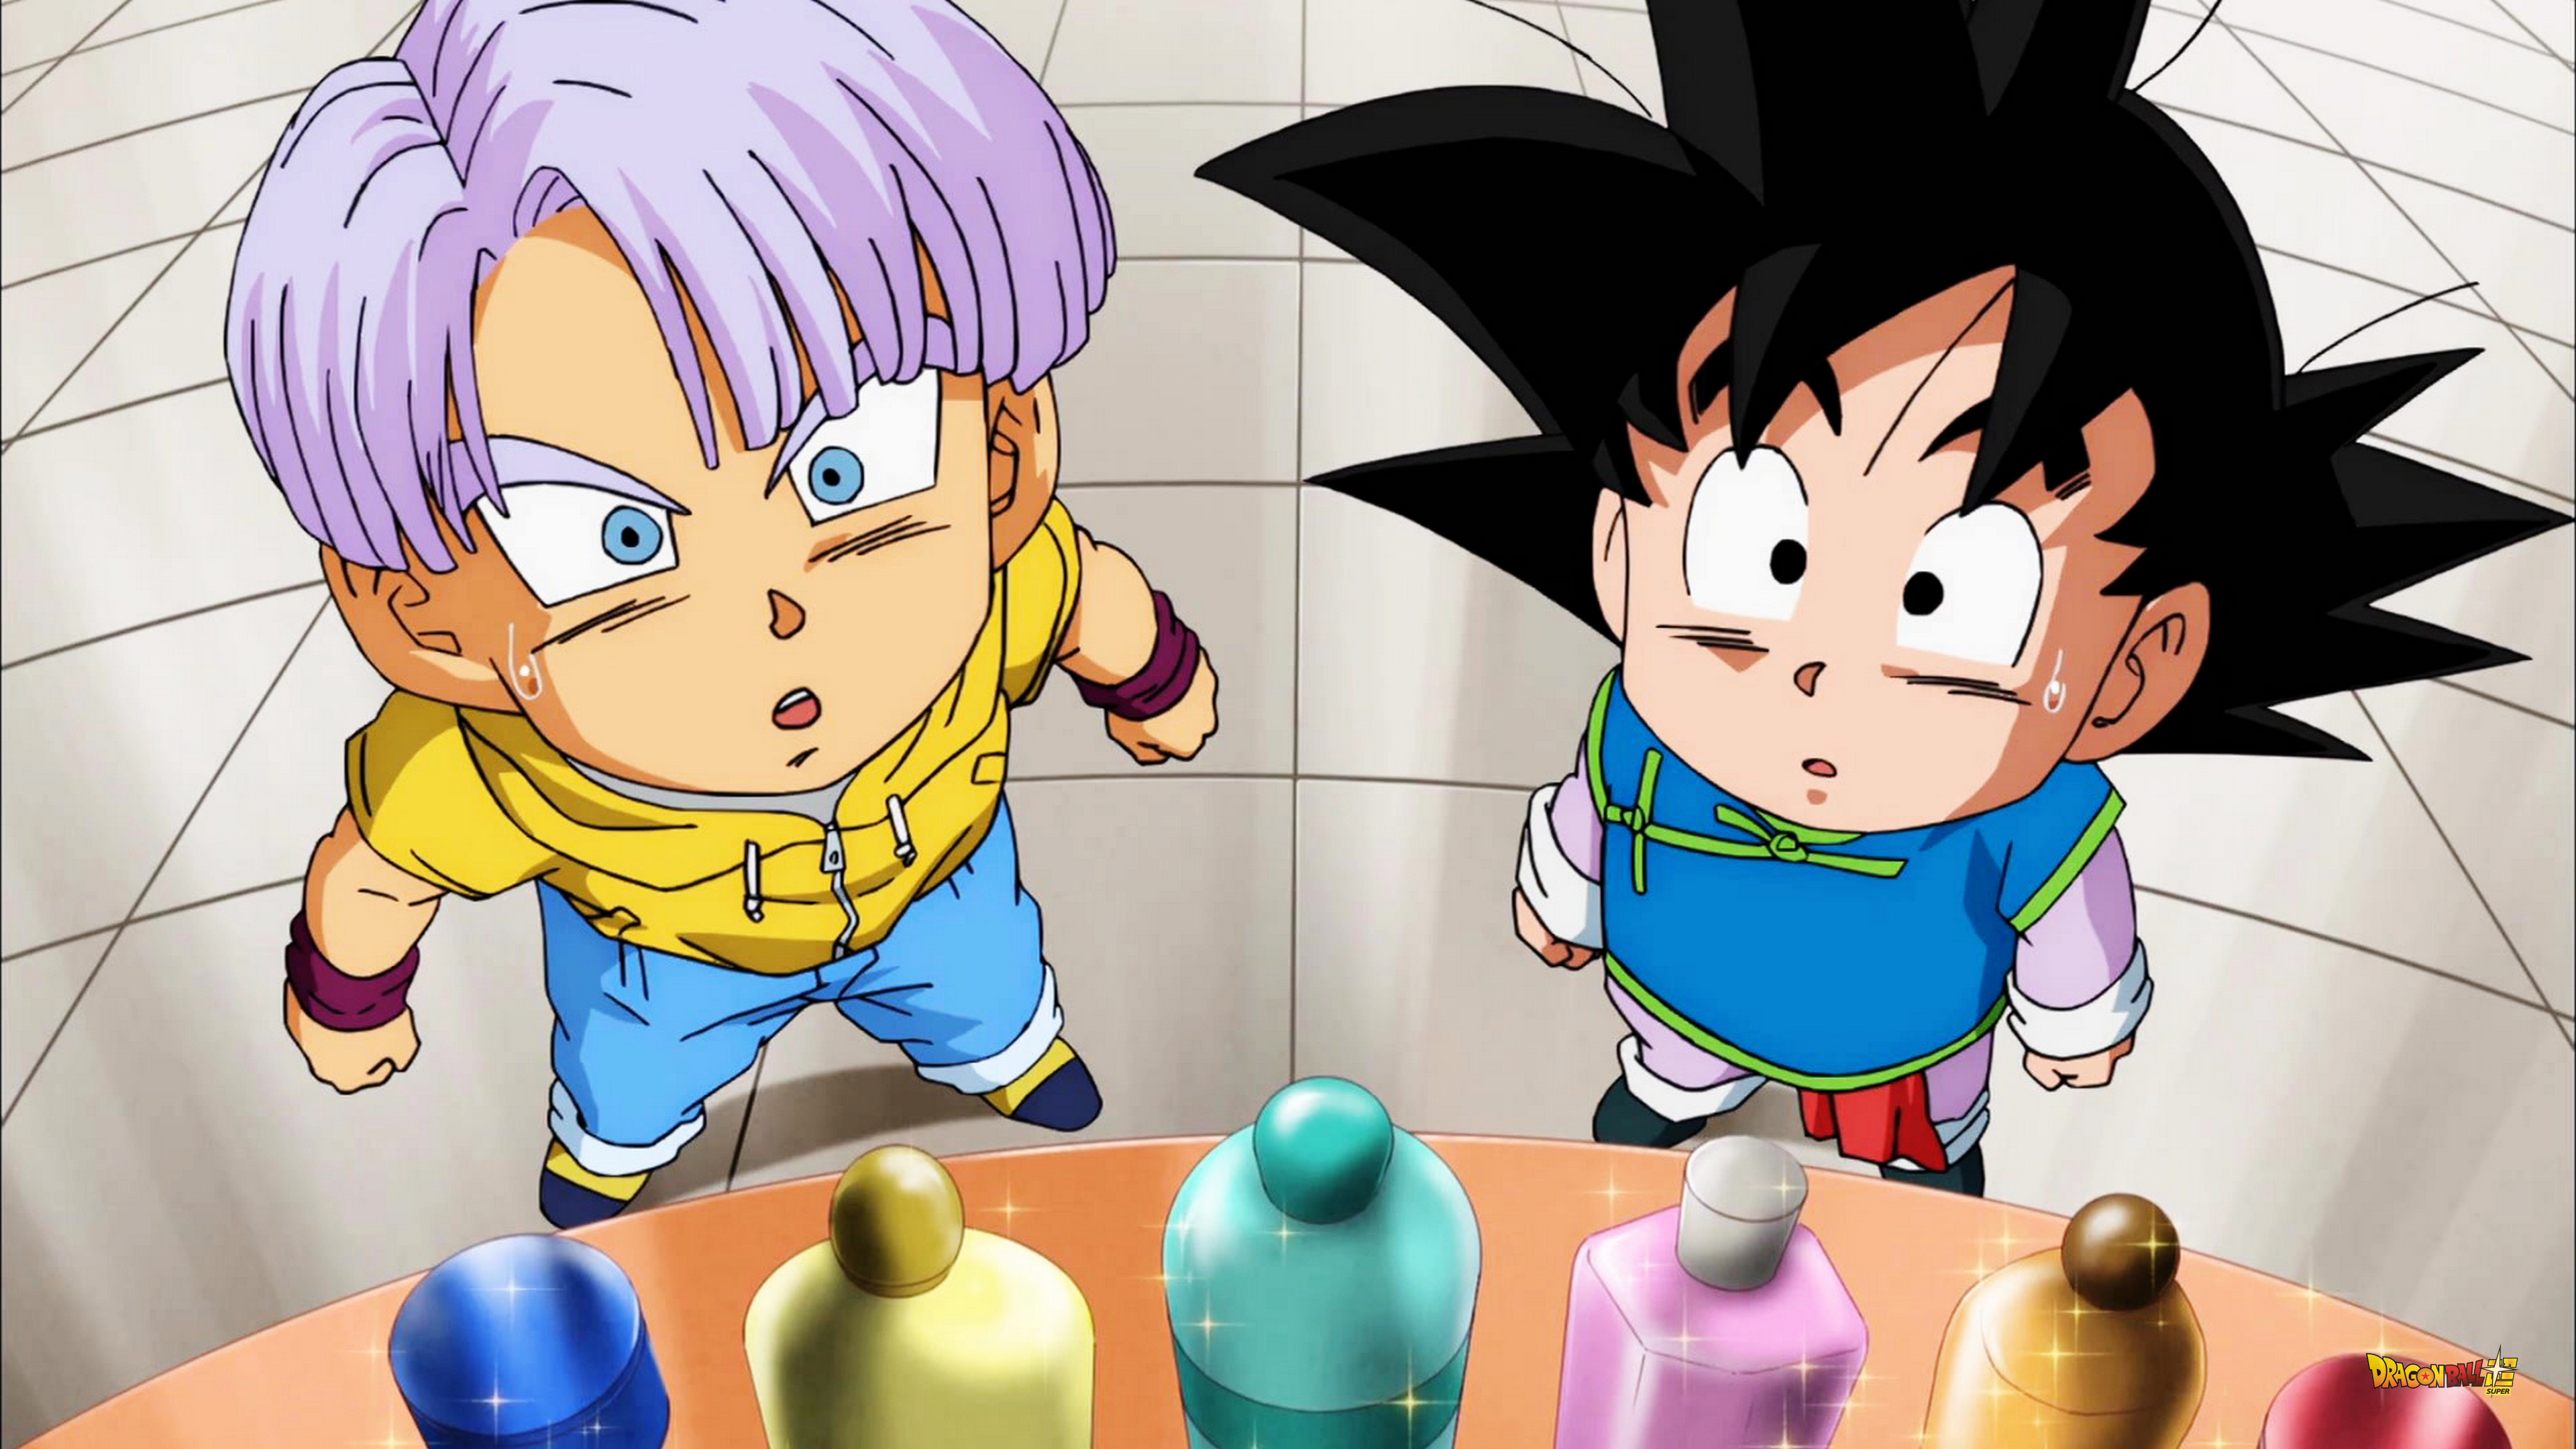 Dragon Ball Super Season 1 Episode 1 S01E01 4k uHD Wallpapers 23 Goku works in his radish field, but wants to go training and fighting.